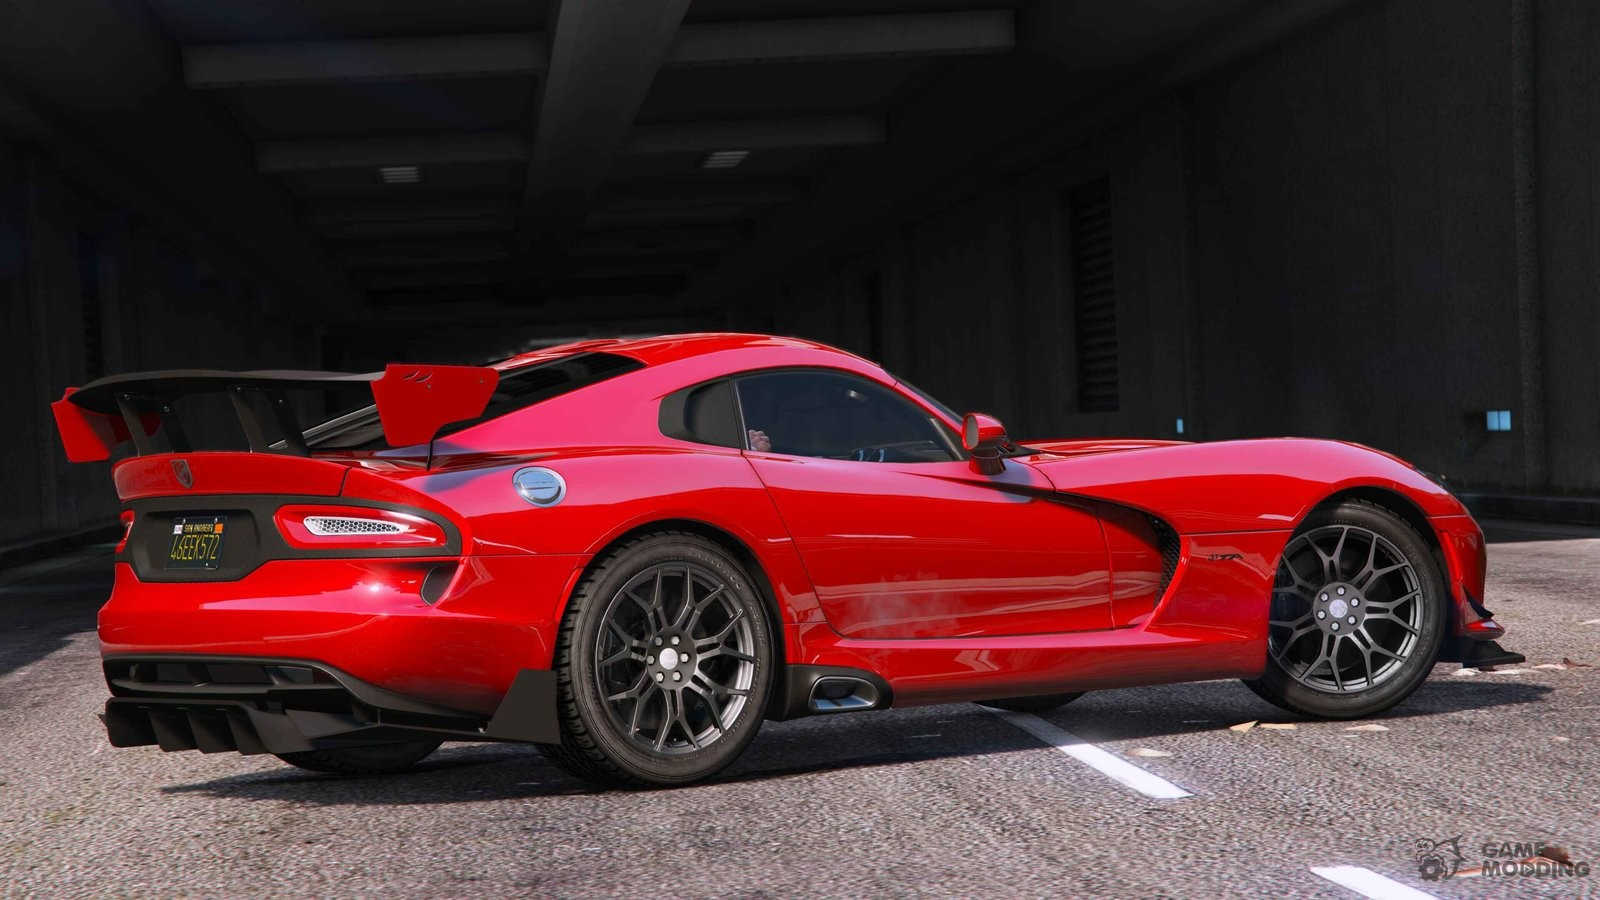 2014 Srt Viper V1 12 For Gta 5